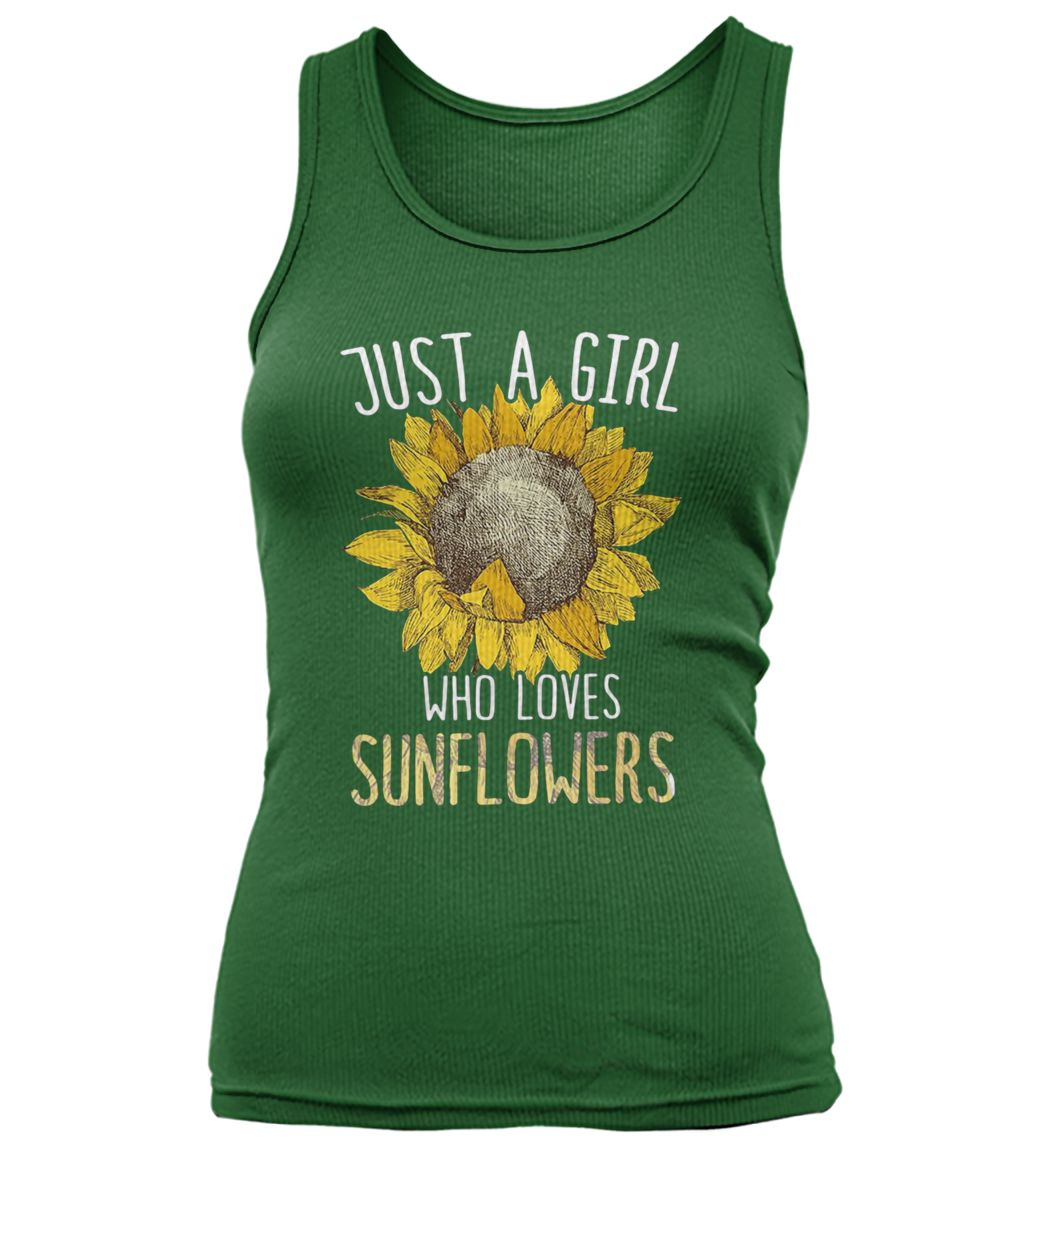 Just a girl who loves sunflowers women's tank top